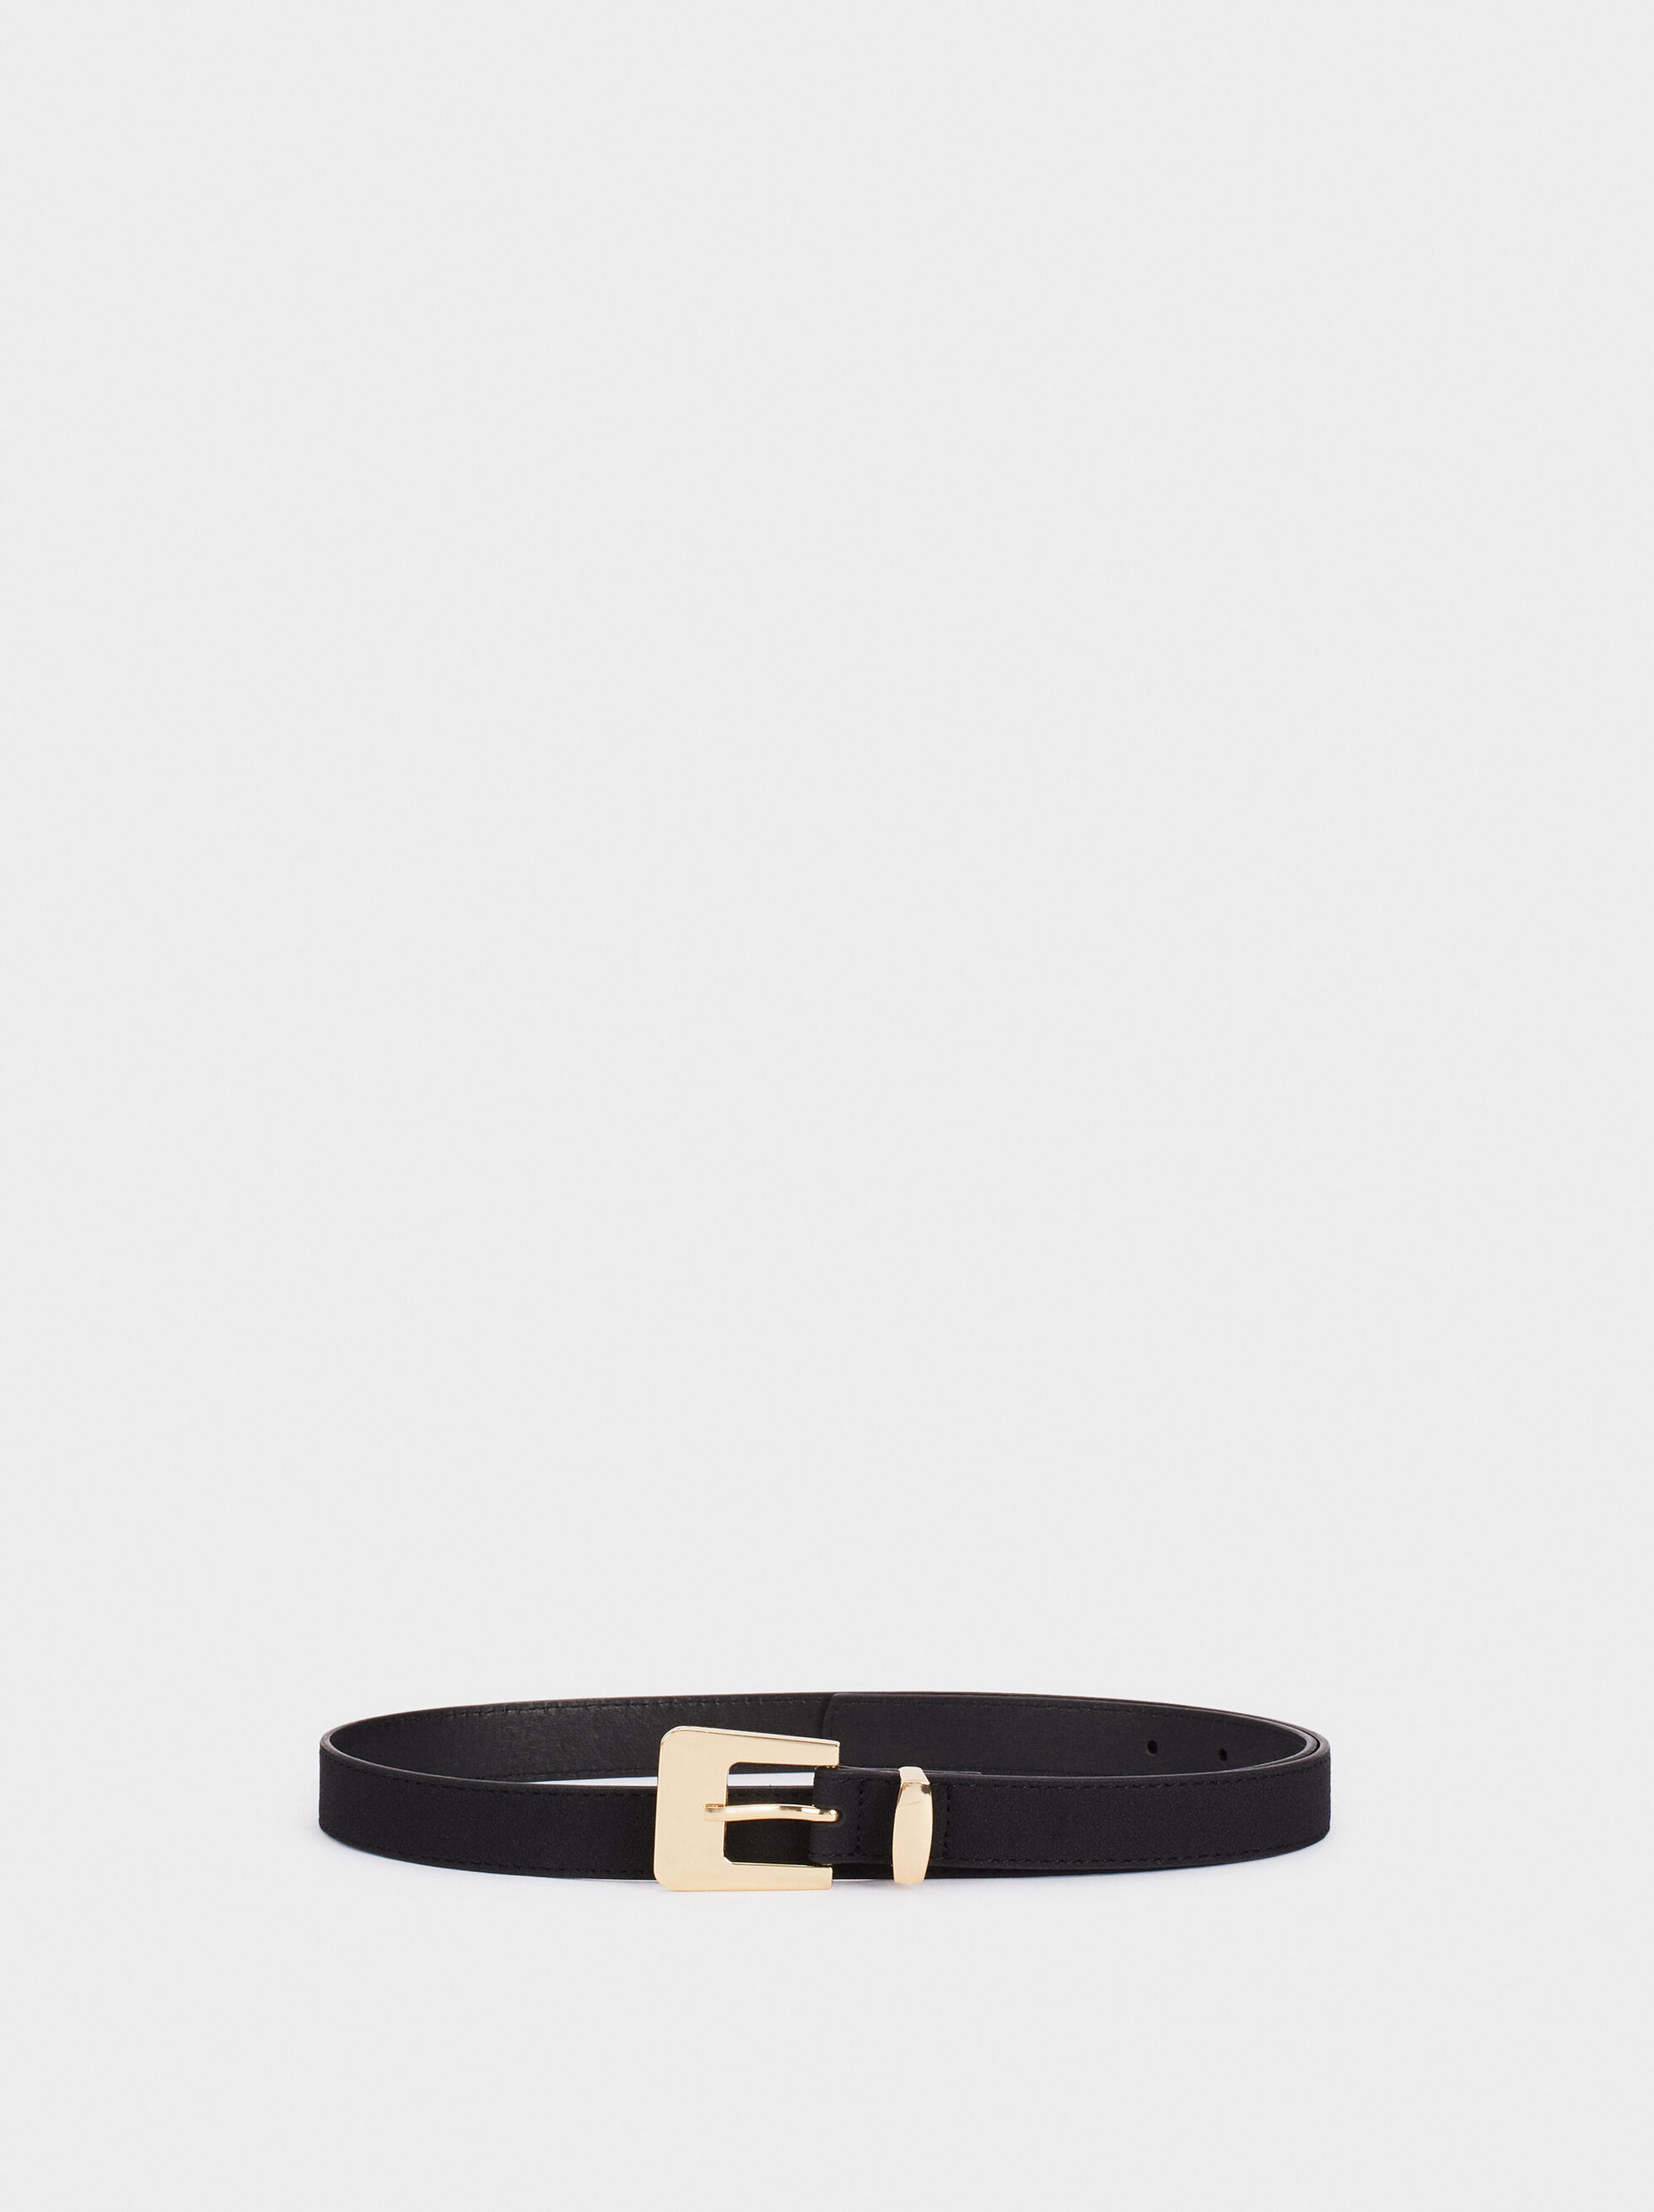 Narrow Belt With Contrast Buckle, Black, hi-res